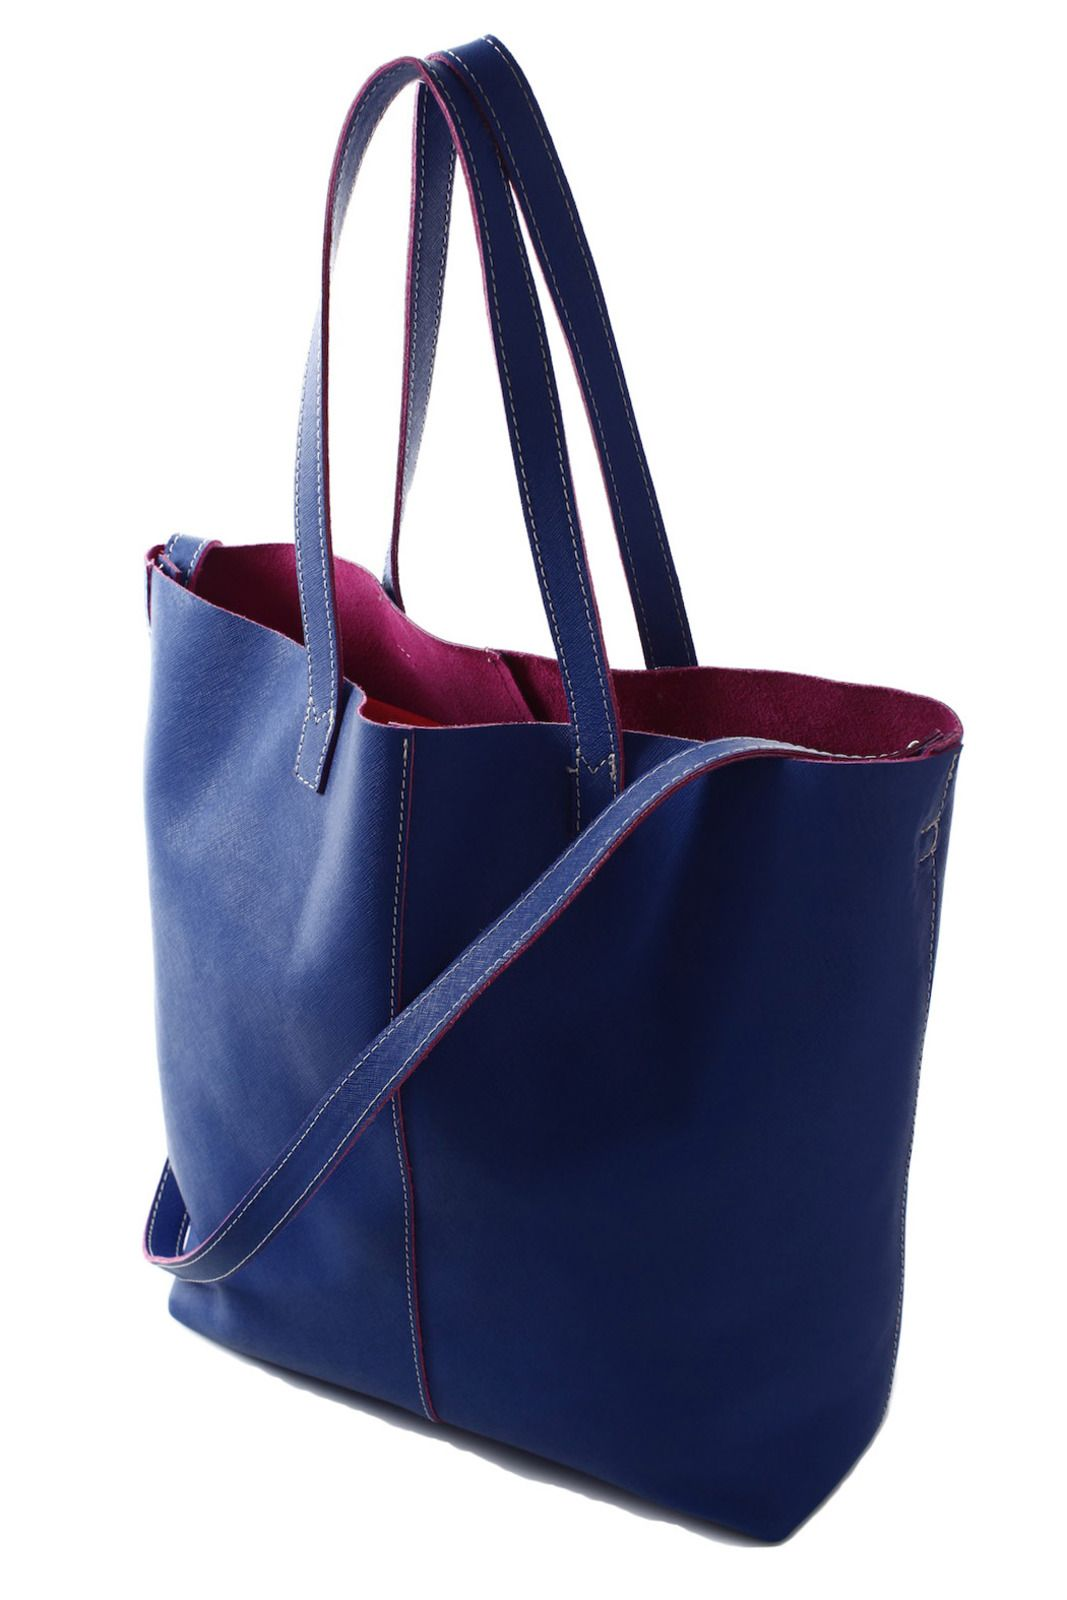 Type Tote Size Large Color Blue Maroon Details Two Straps Material Leather Brand Baci